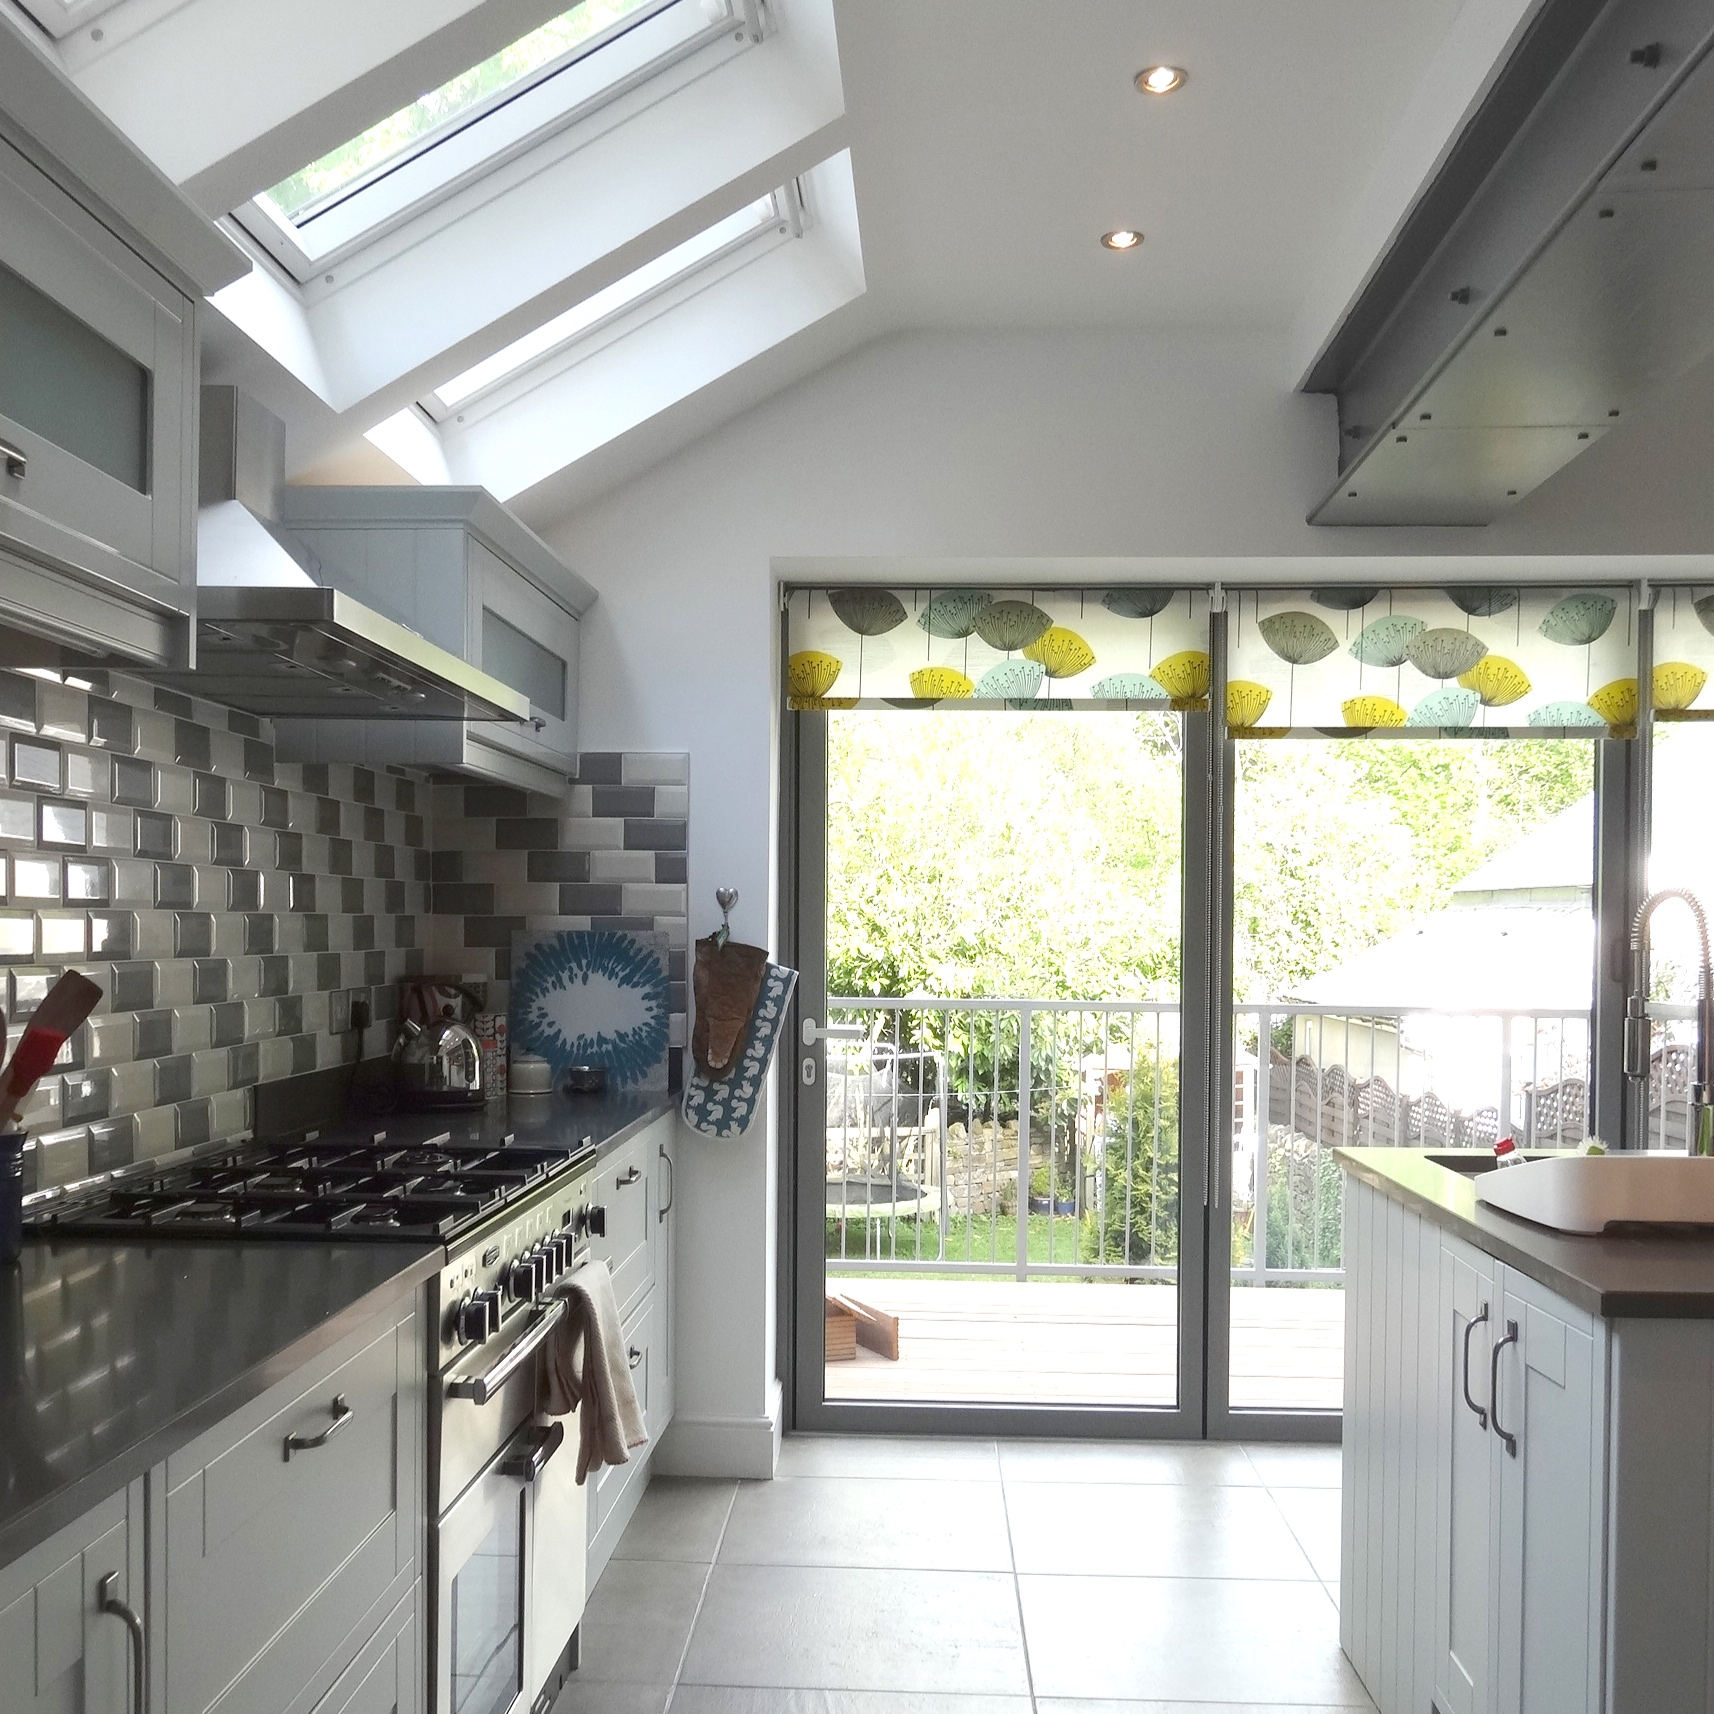 Abbeydale Road - A project to transform the rear of a Victorian semi-detached house. A small extension infilling the yard was added. This transformed the cramped off shot kitchen into a light and spacious room arranged around a central island.,, (READ MORE)